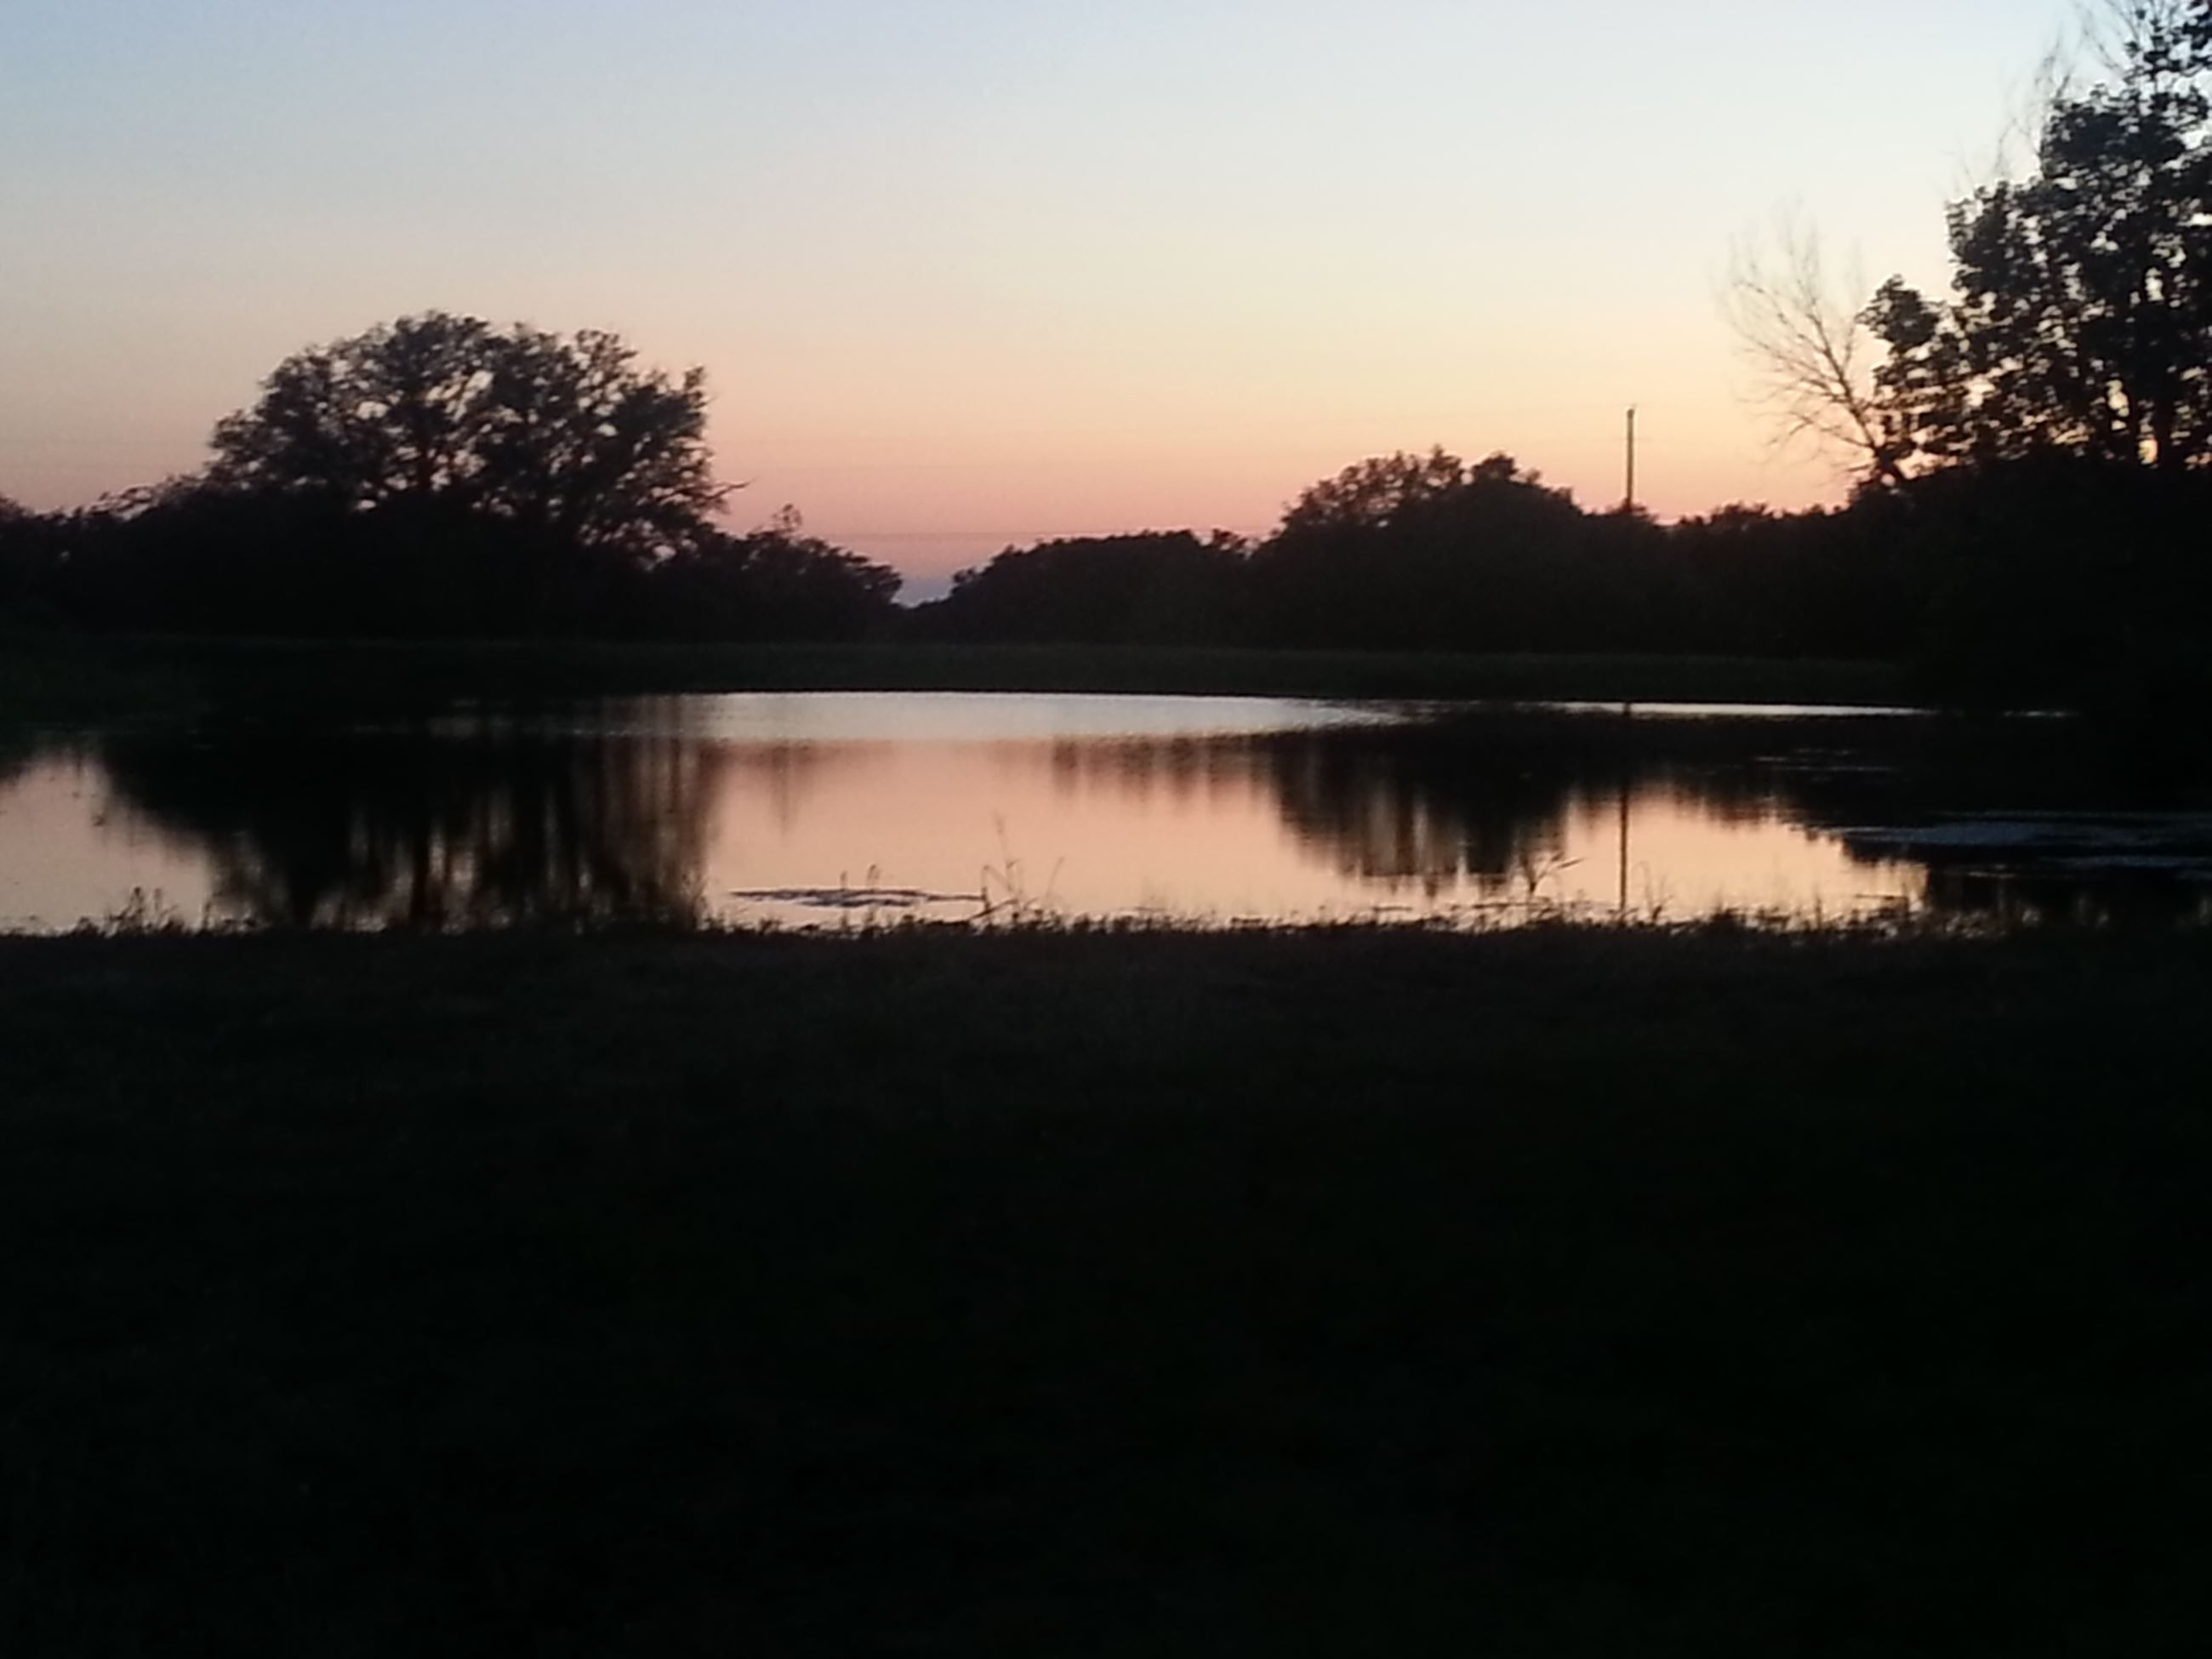 SUNSET OVER BROWNWOOD submitted by Gwen Stone